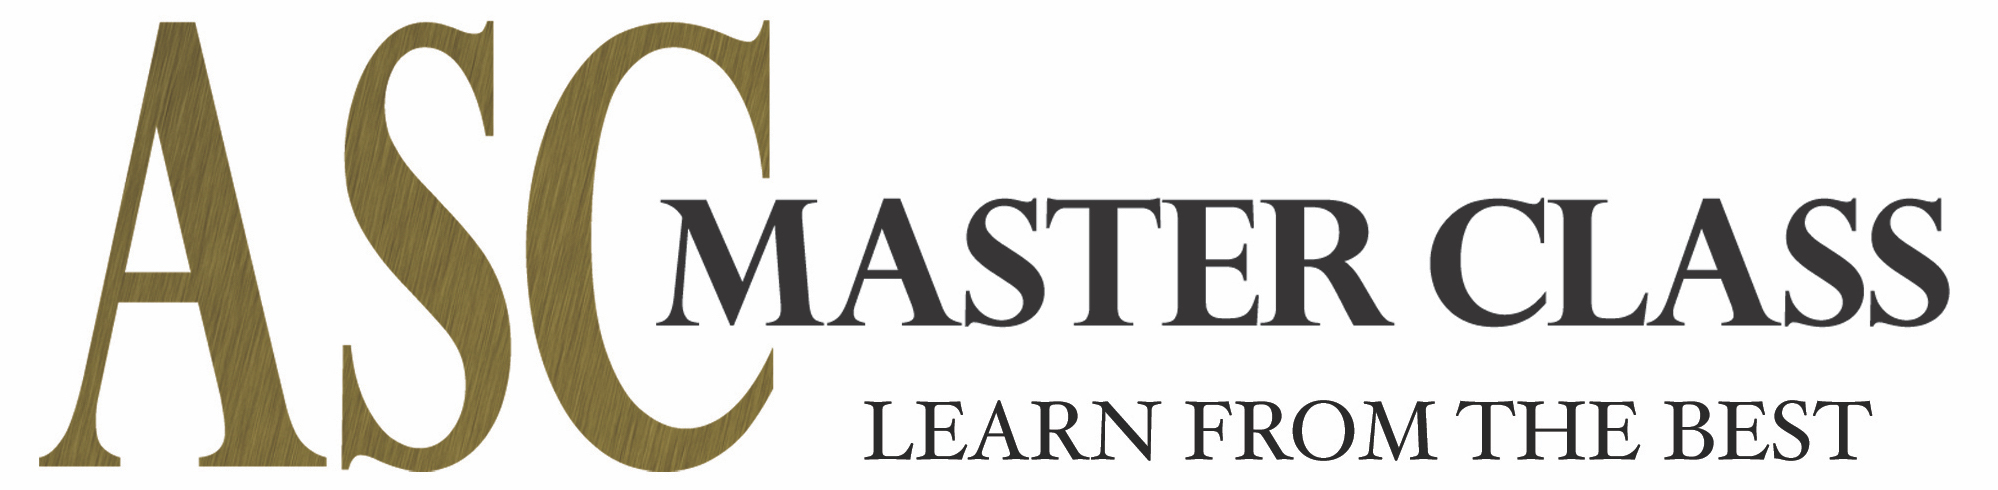 ASC Enrolling May, June Master Classes - The American